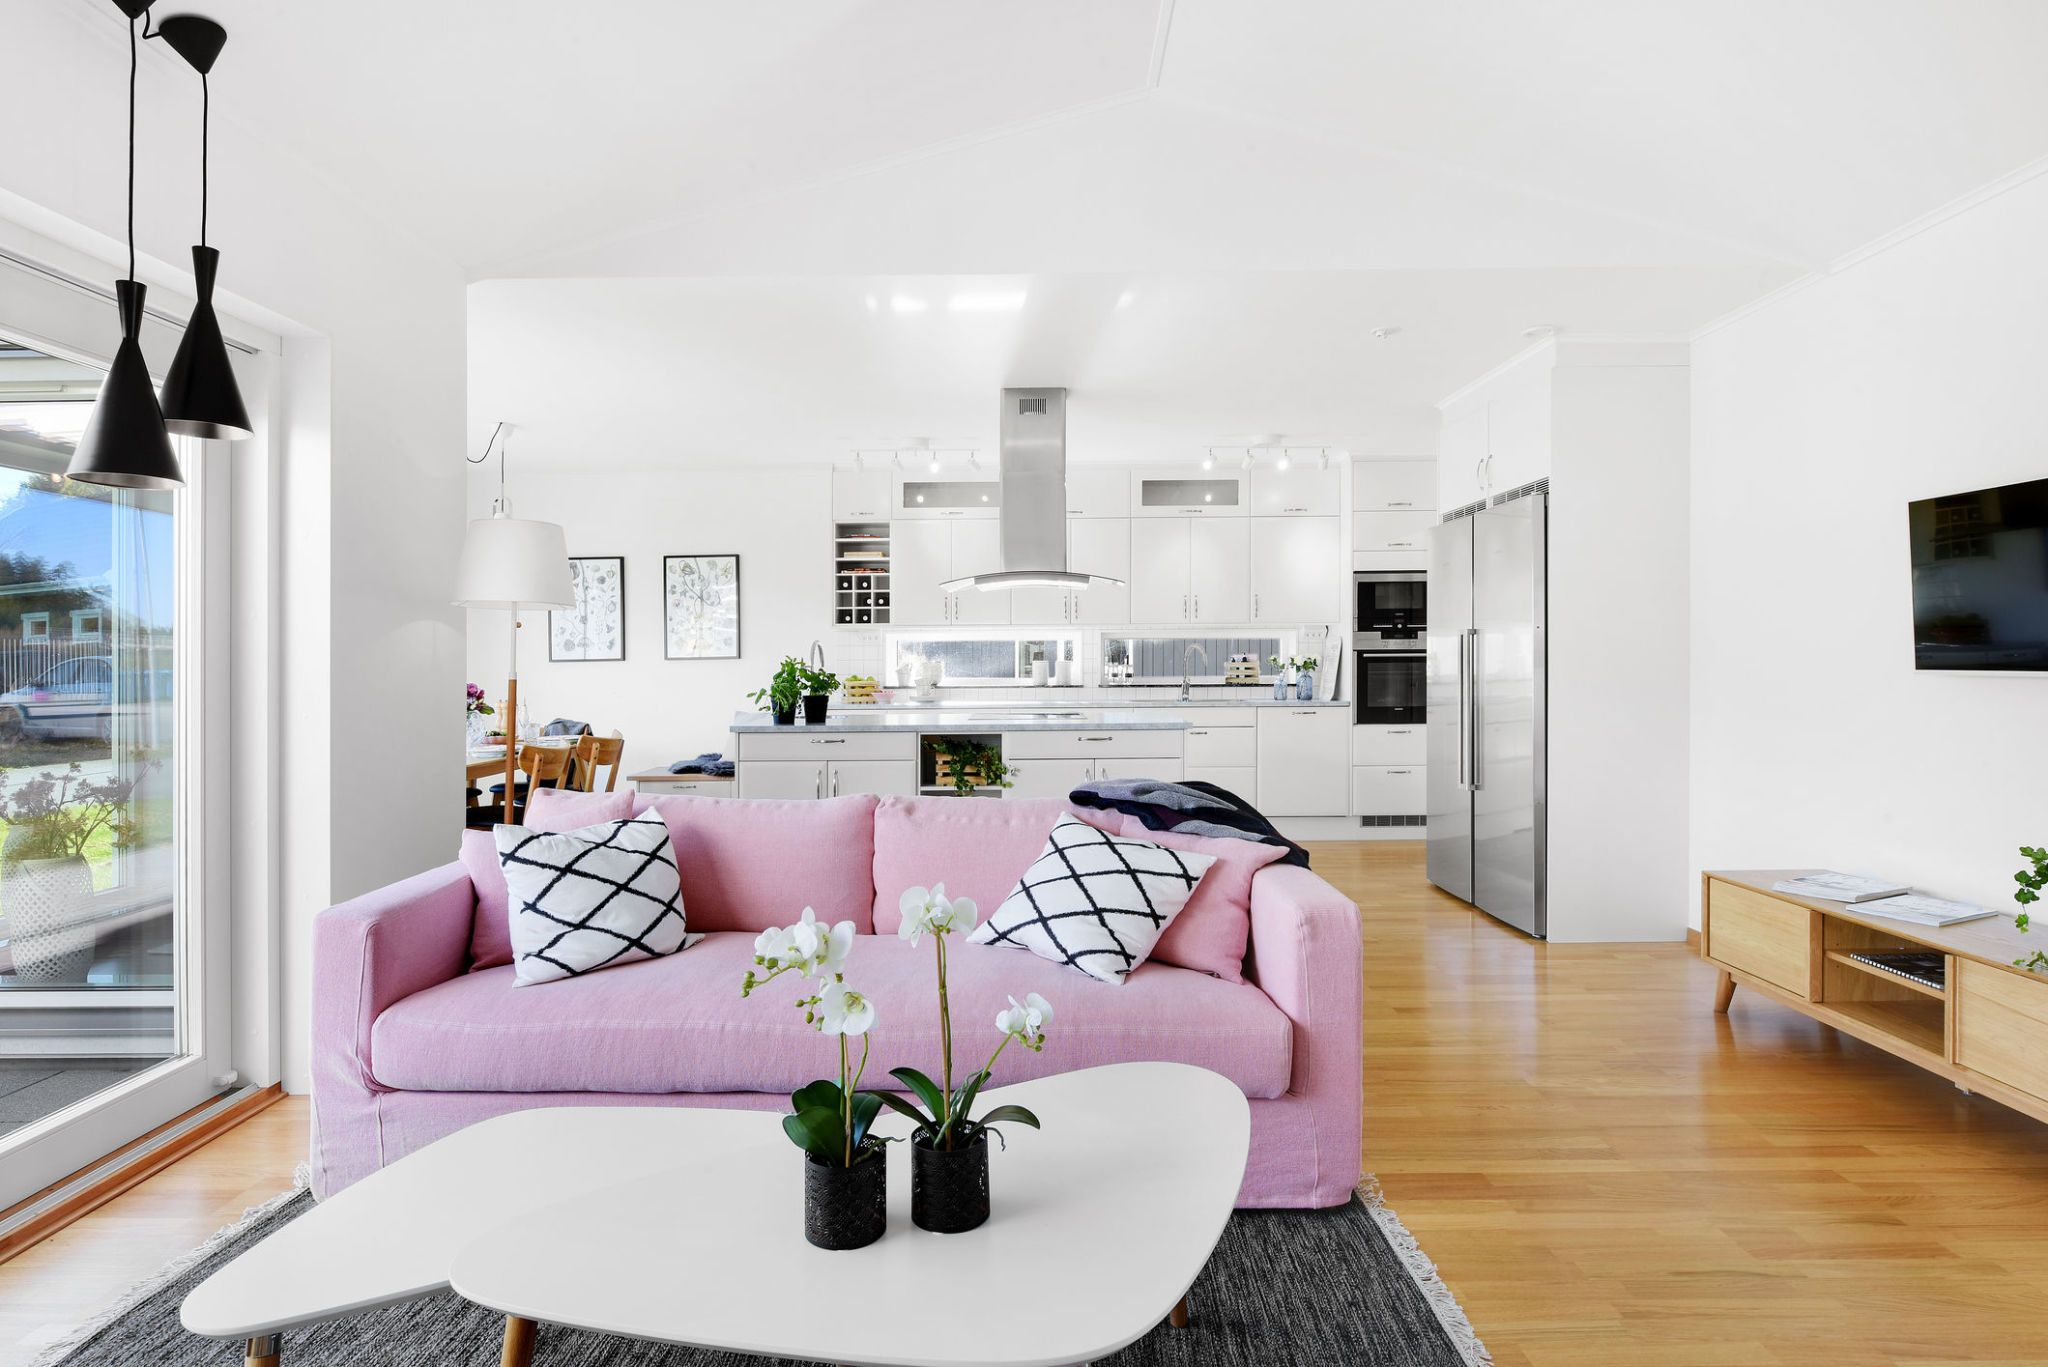 living room plan design primitive country rooms pictures how to a layout and make the best use of space interior modern with pink sofa